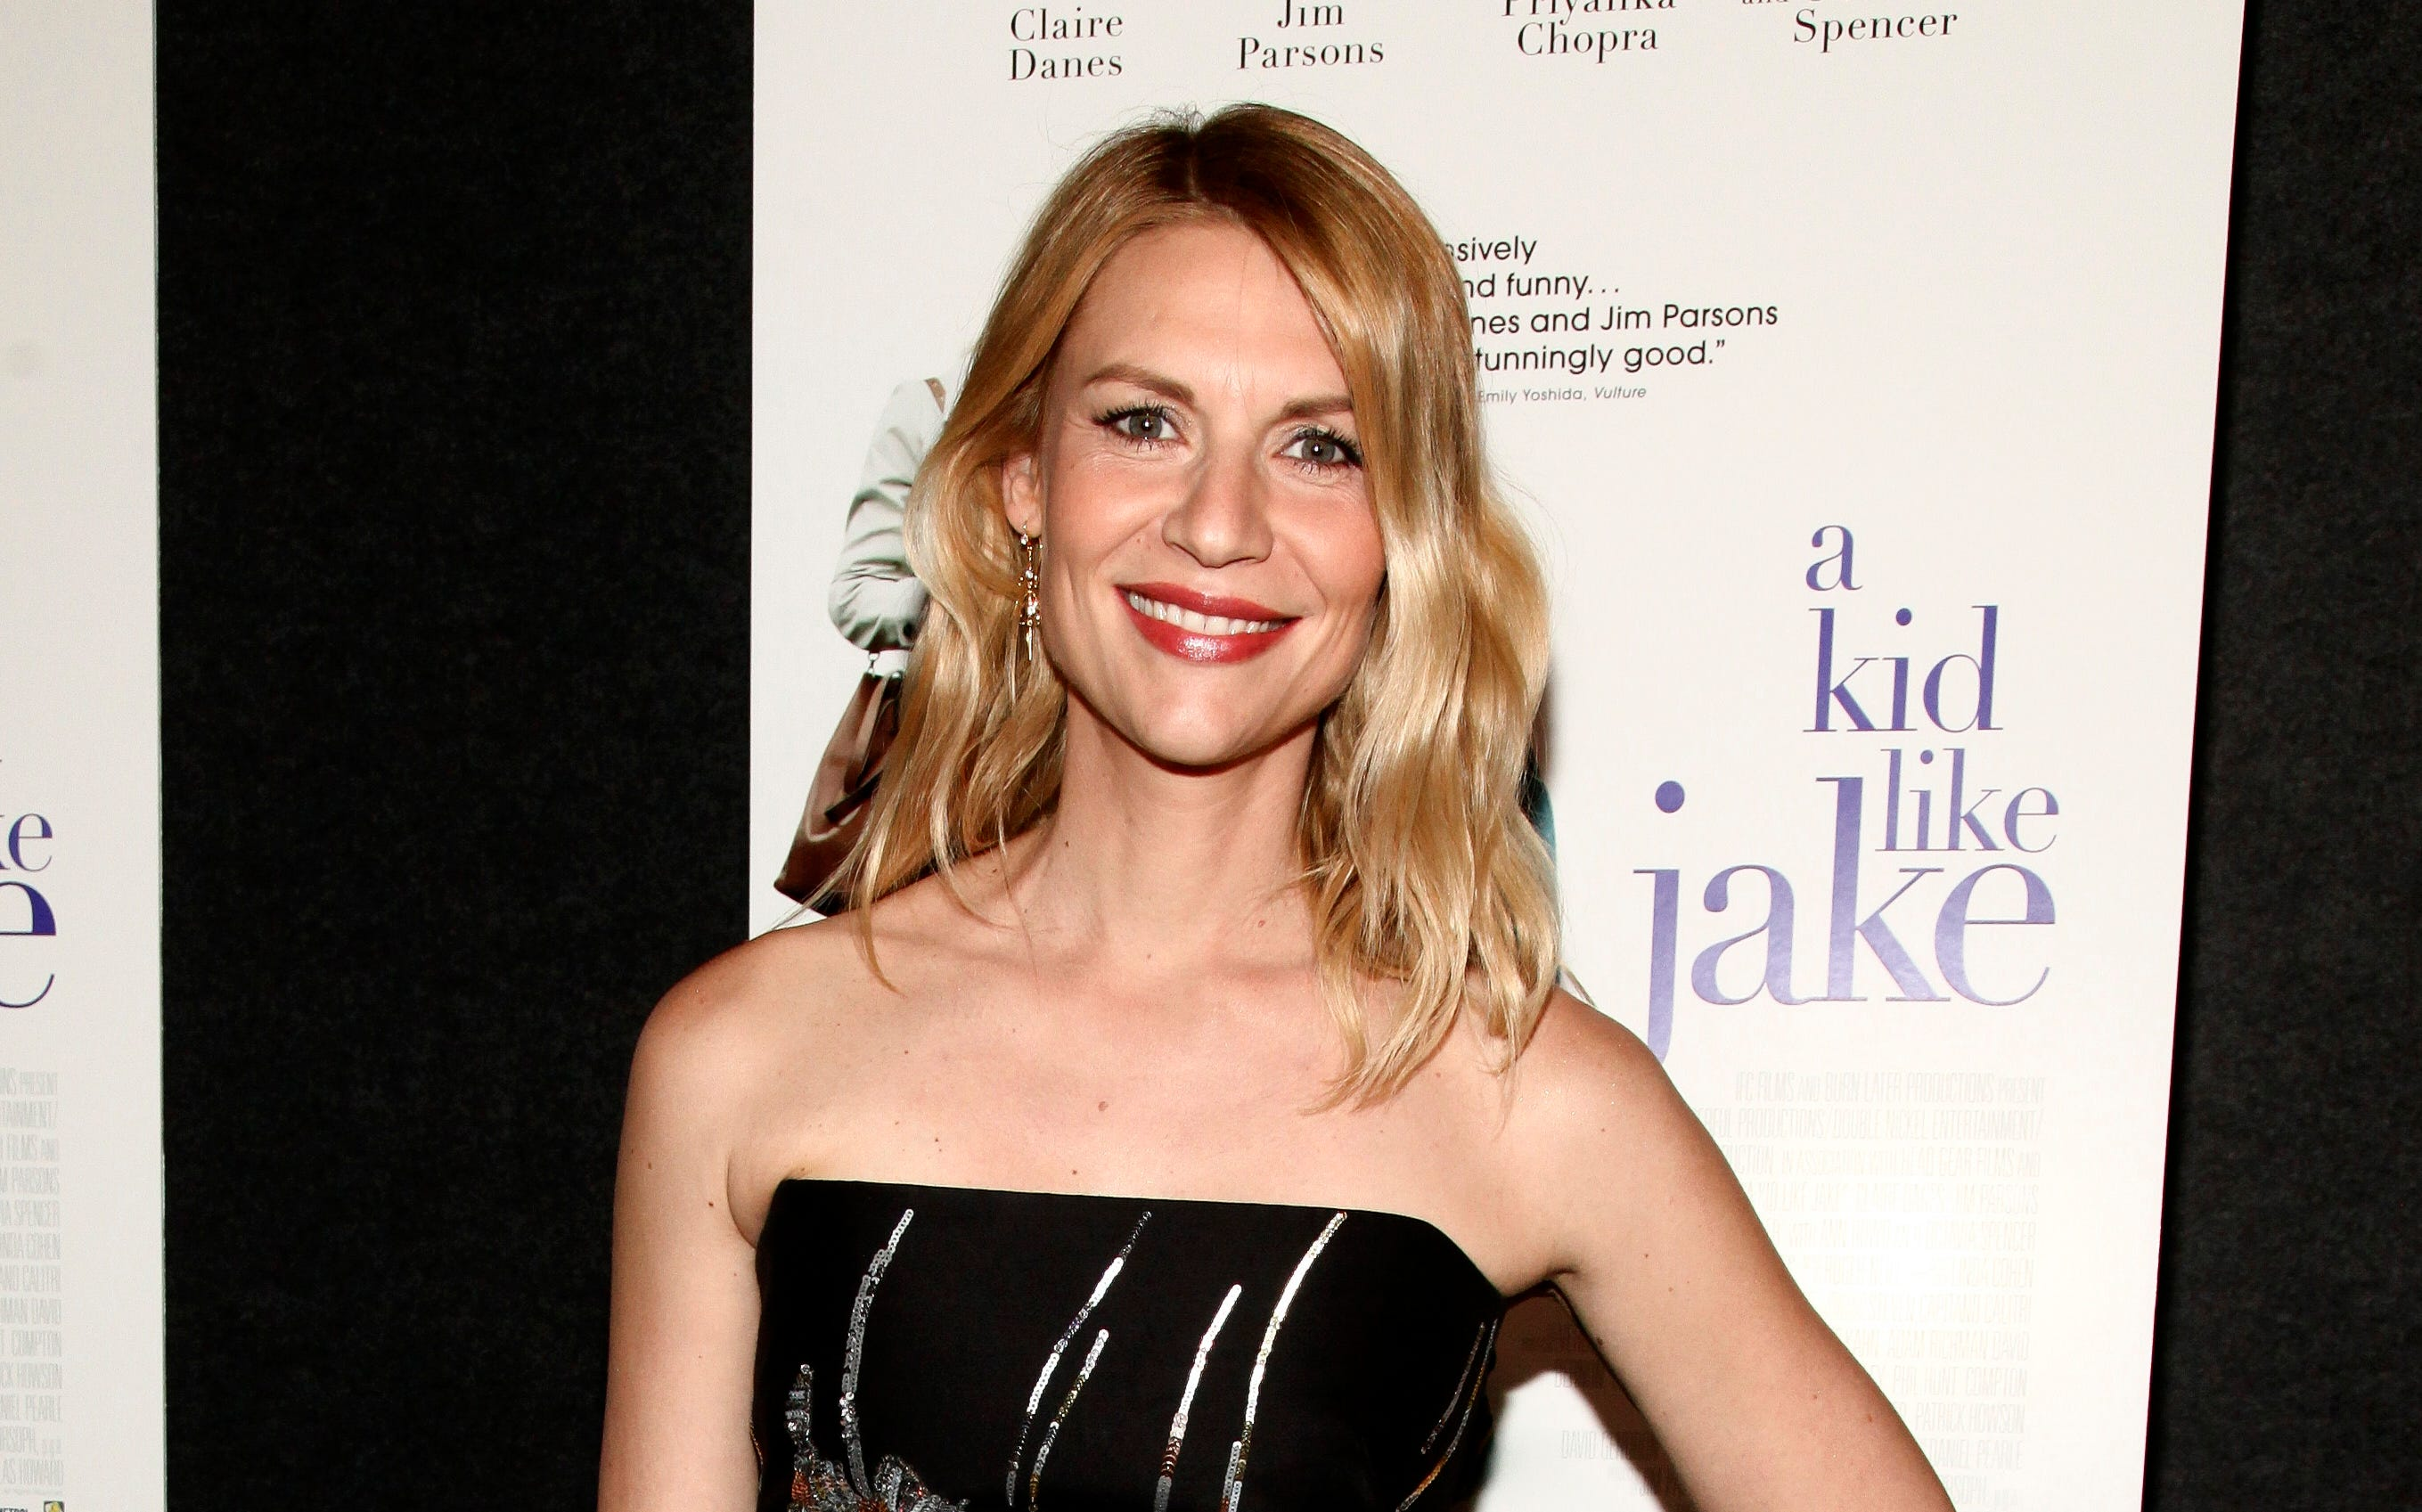 Selfie Claire Danes nudes (61 photo), Sexy, Leaked, Twitter, cleavage 2017